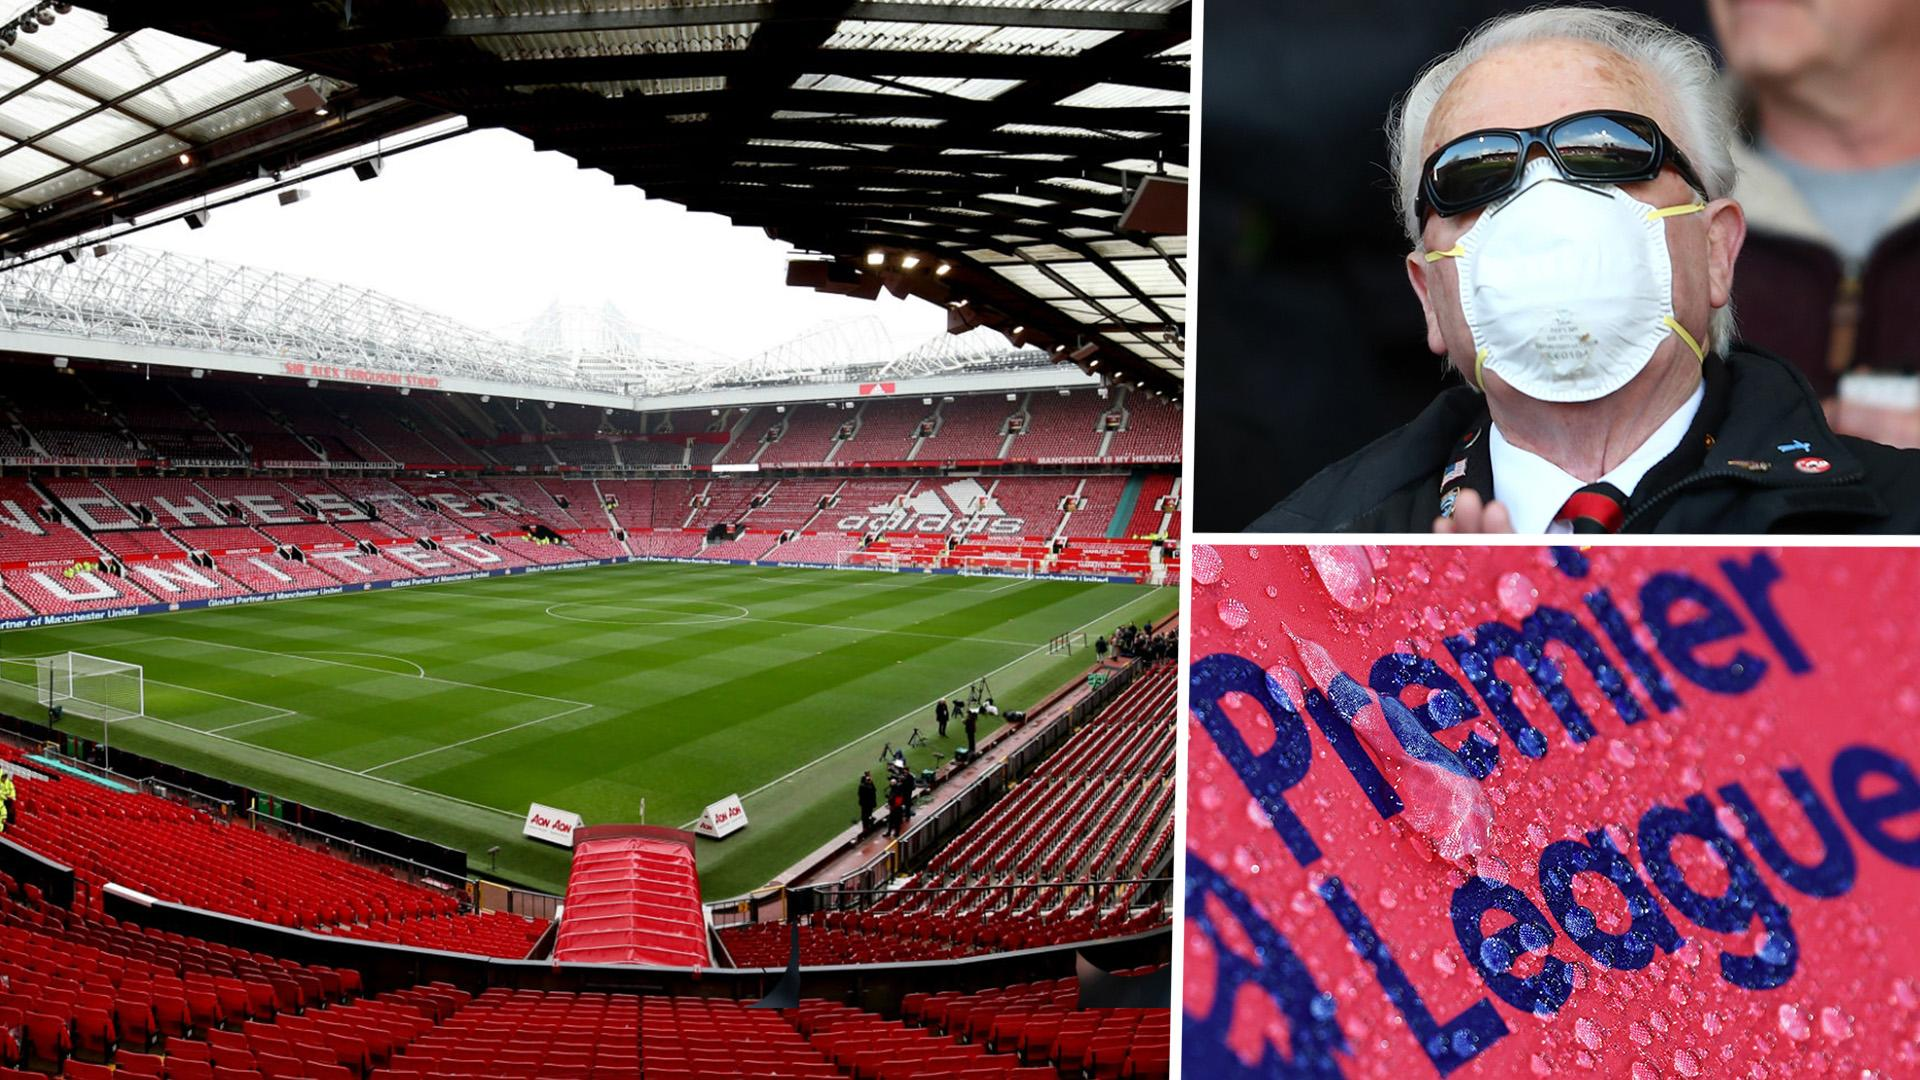 Premier League season will be cancelled if clubs won't play at neutral grounds, says LMA chief